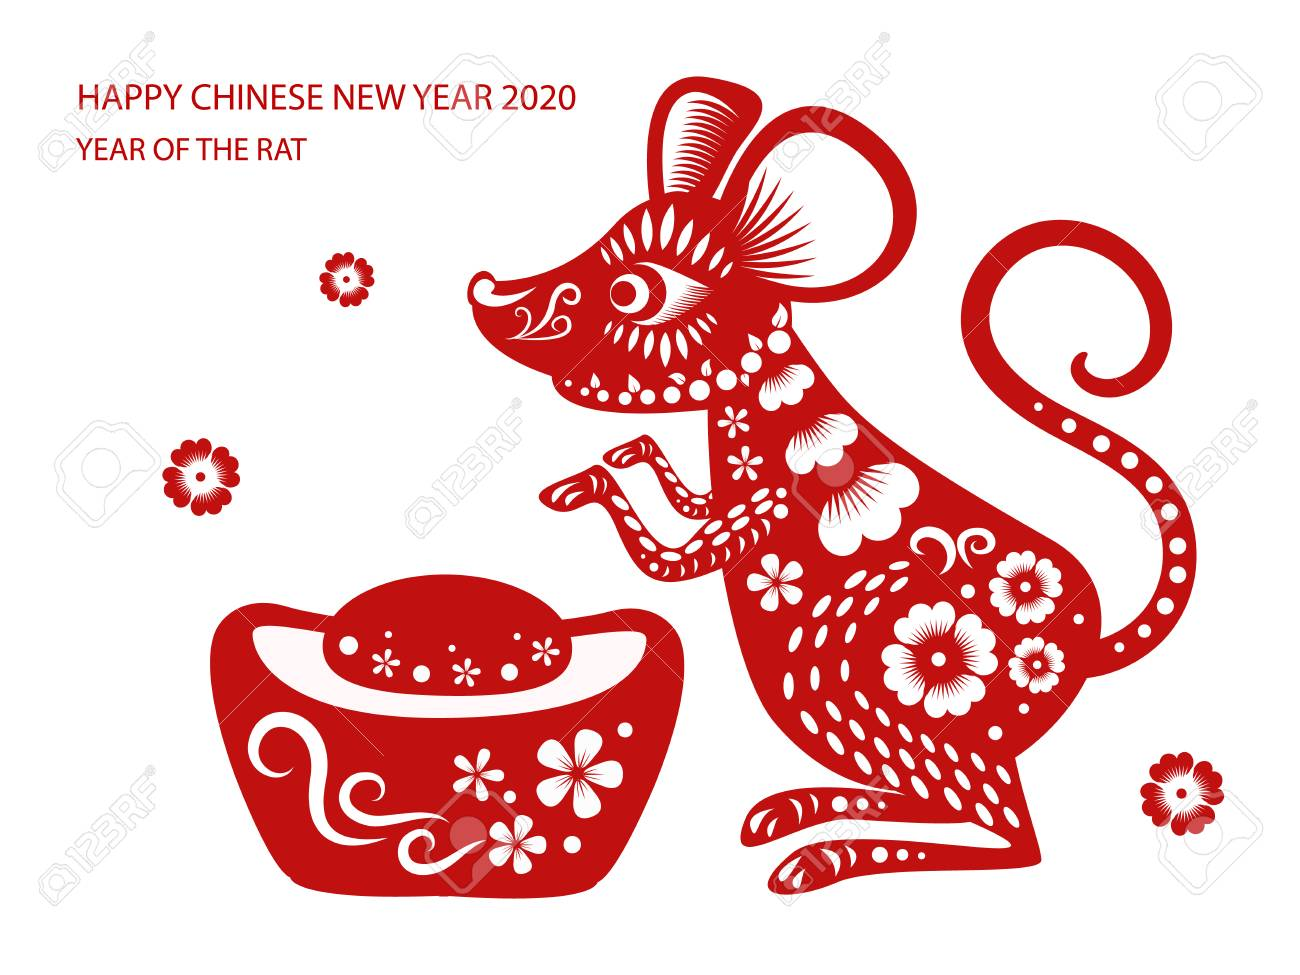 Chinese New Year 2020 Animal.Happy Chinese New Year 2020 Year Of The Rat